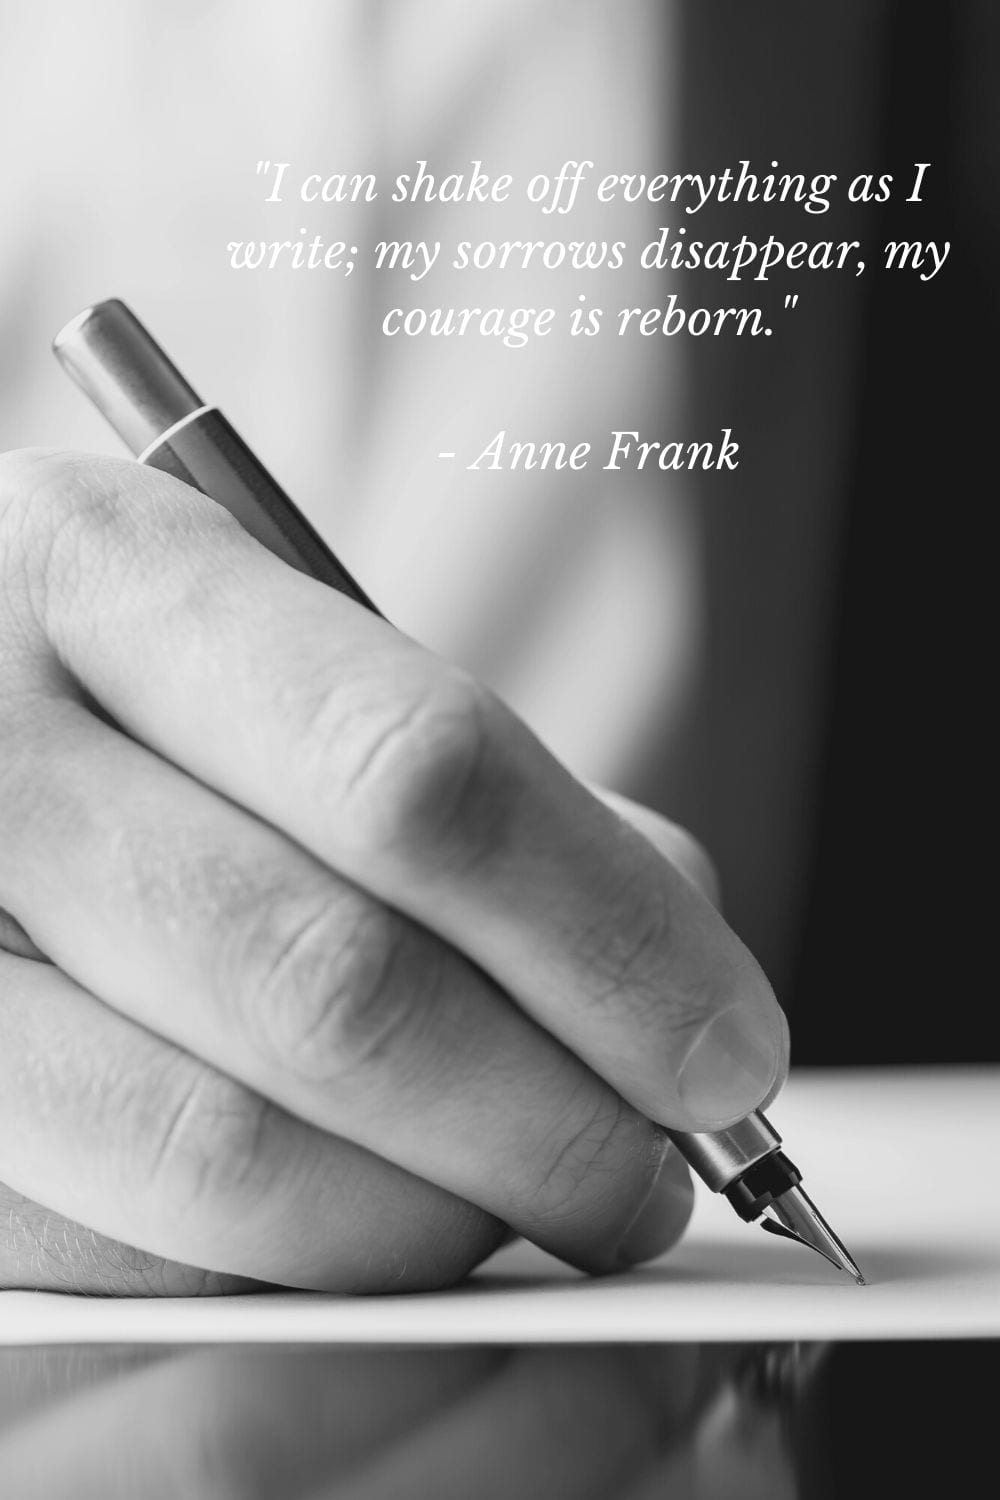 Anne Frank quote about courage